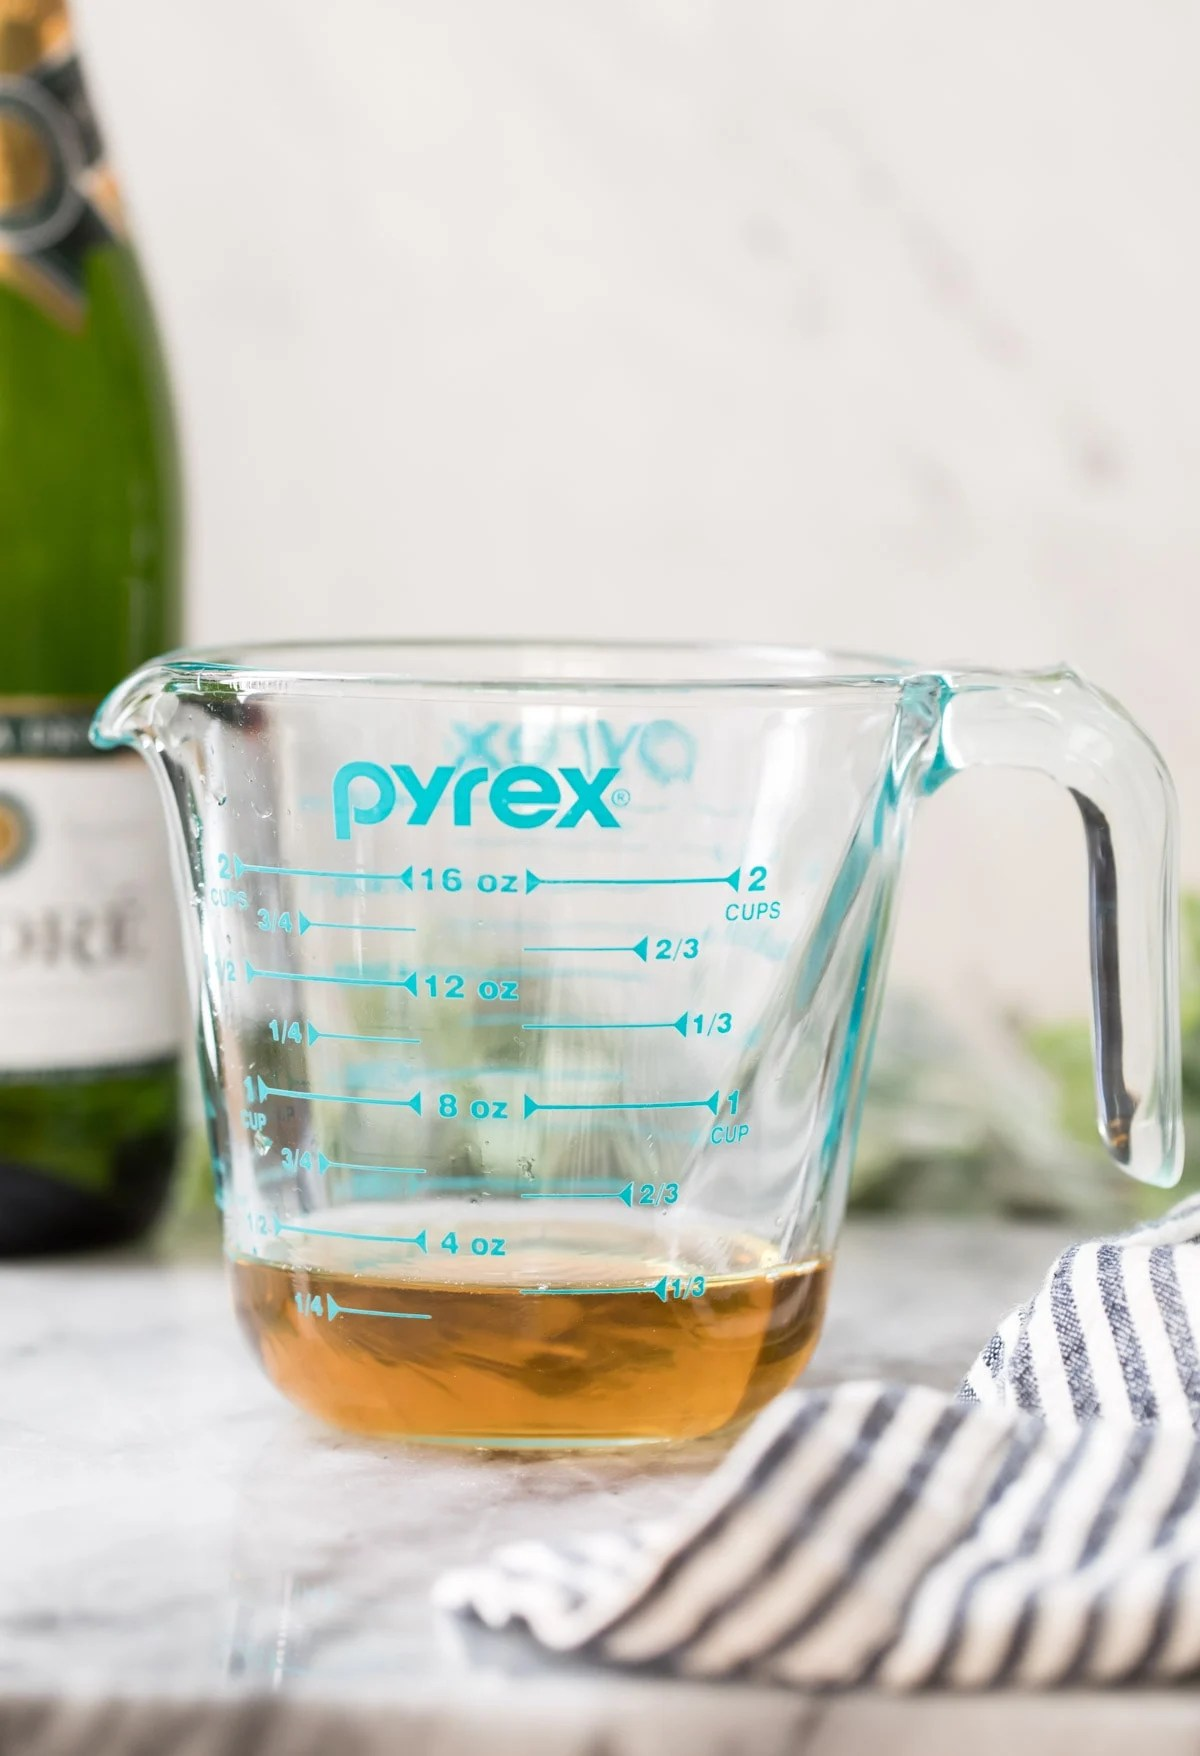 champagne that has been reduced in a blue measuring cup